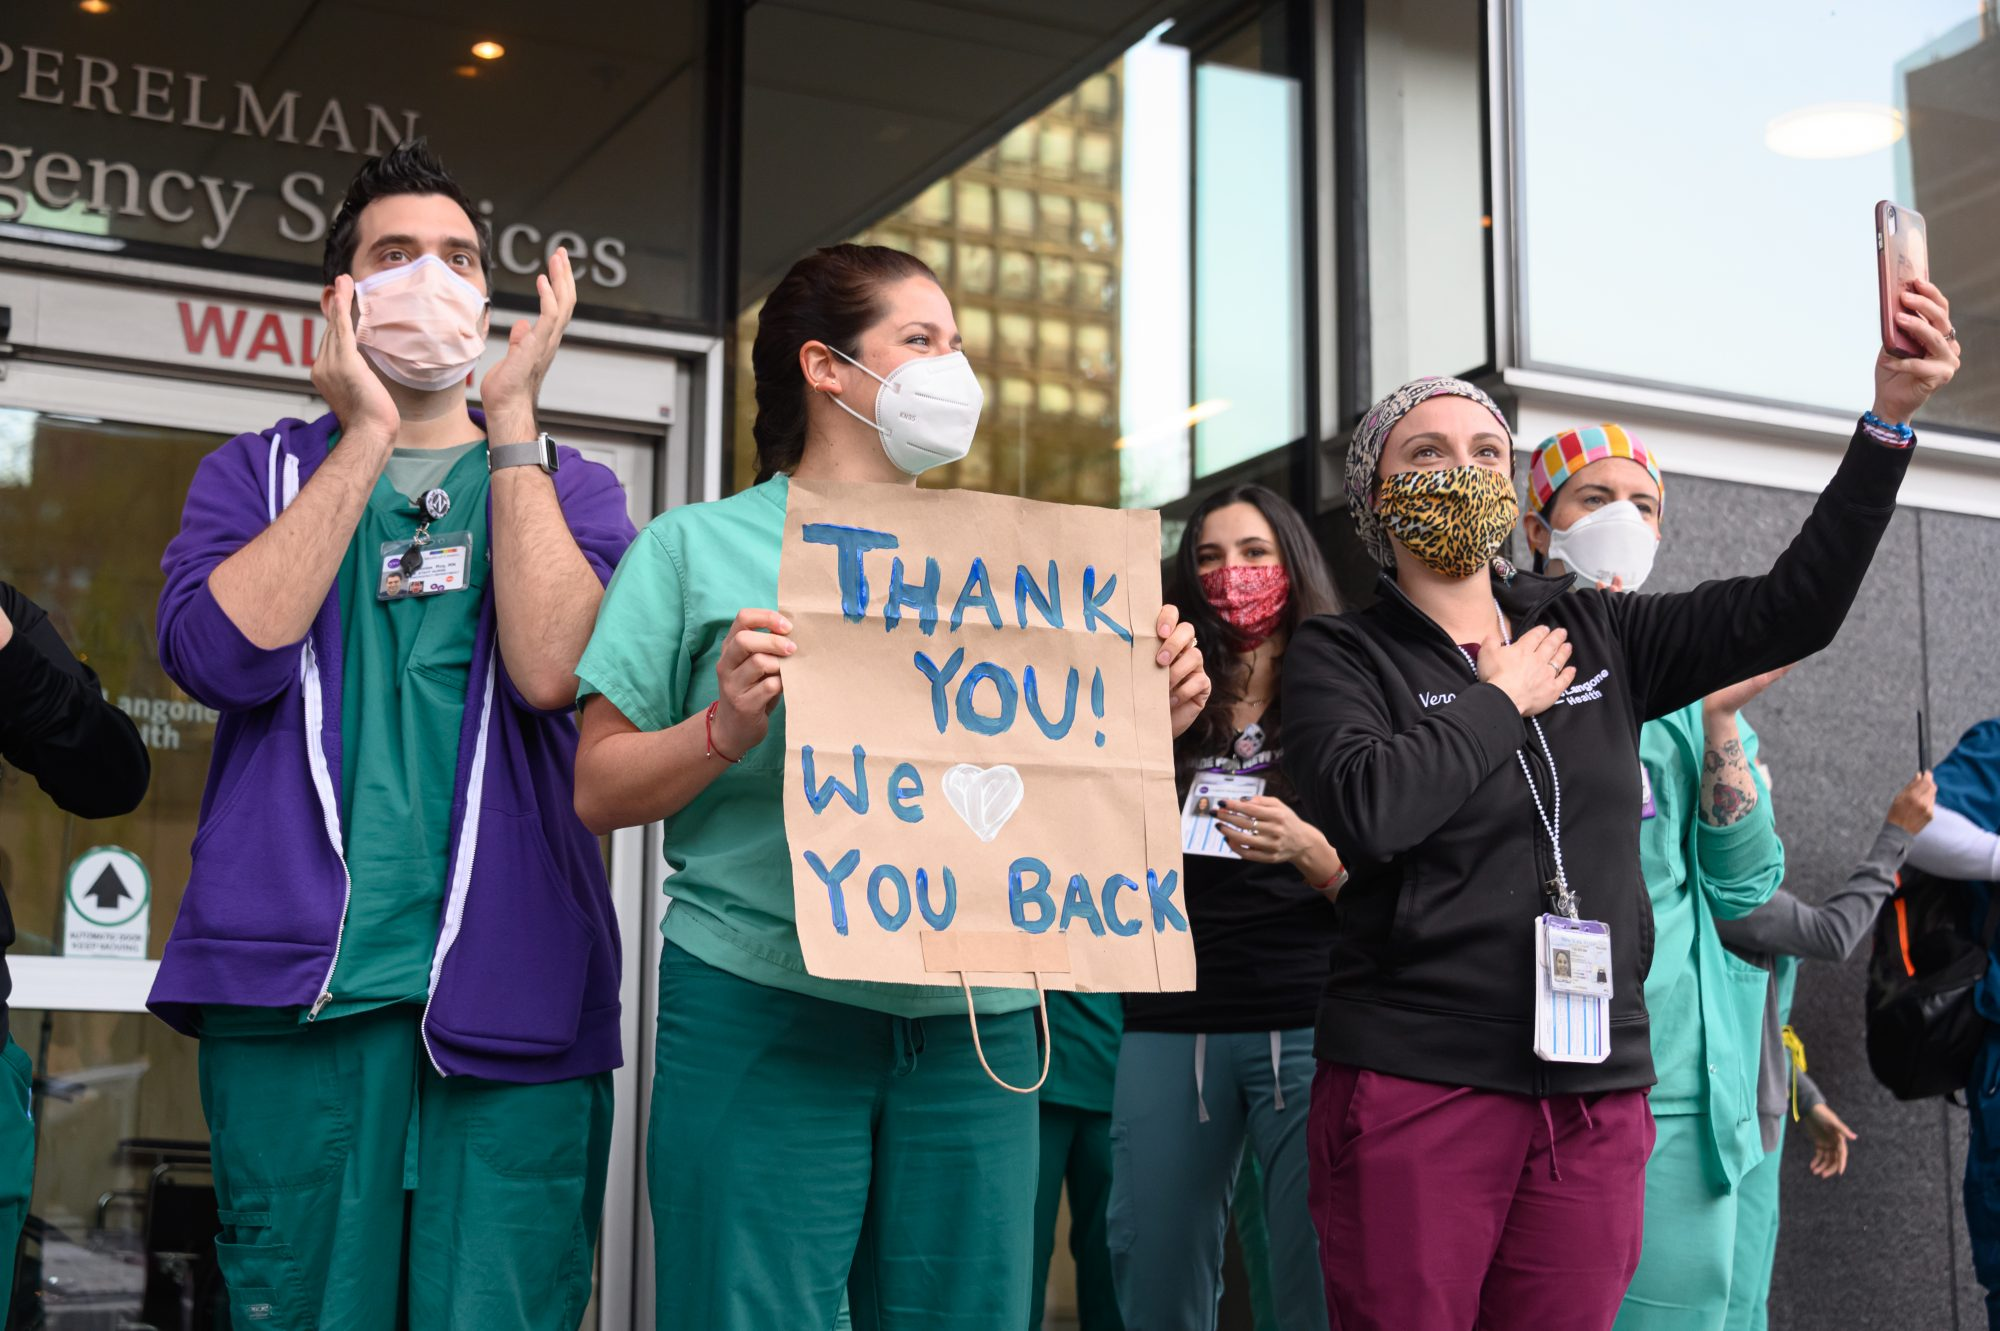 Hospital staff hold up signs to thank people for donations